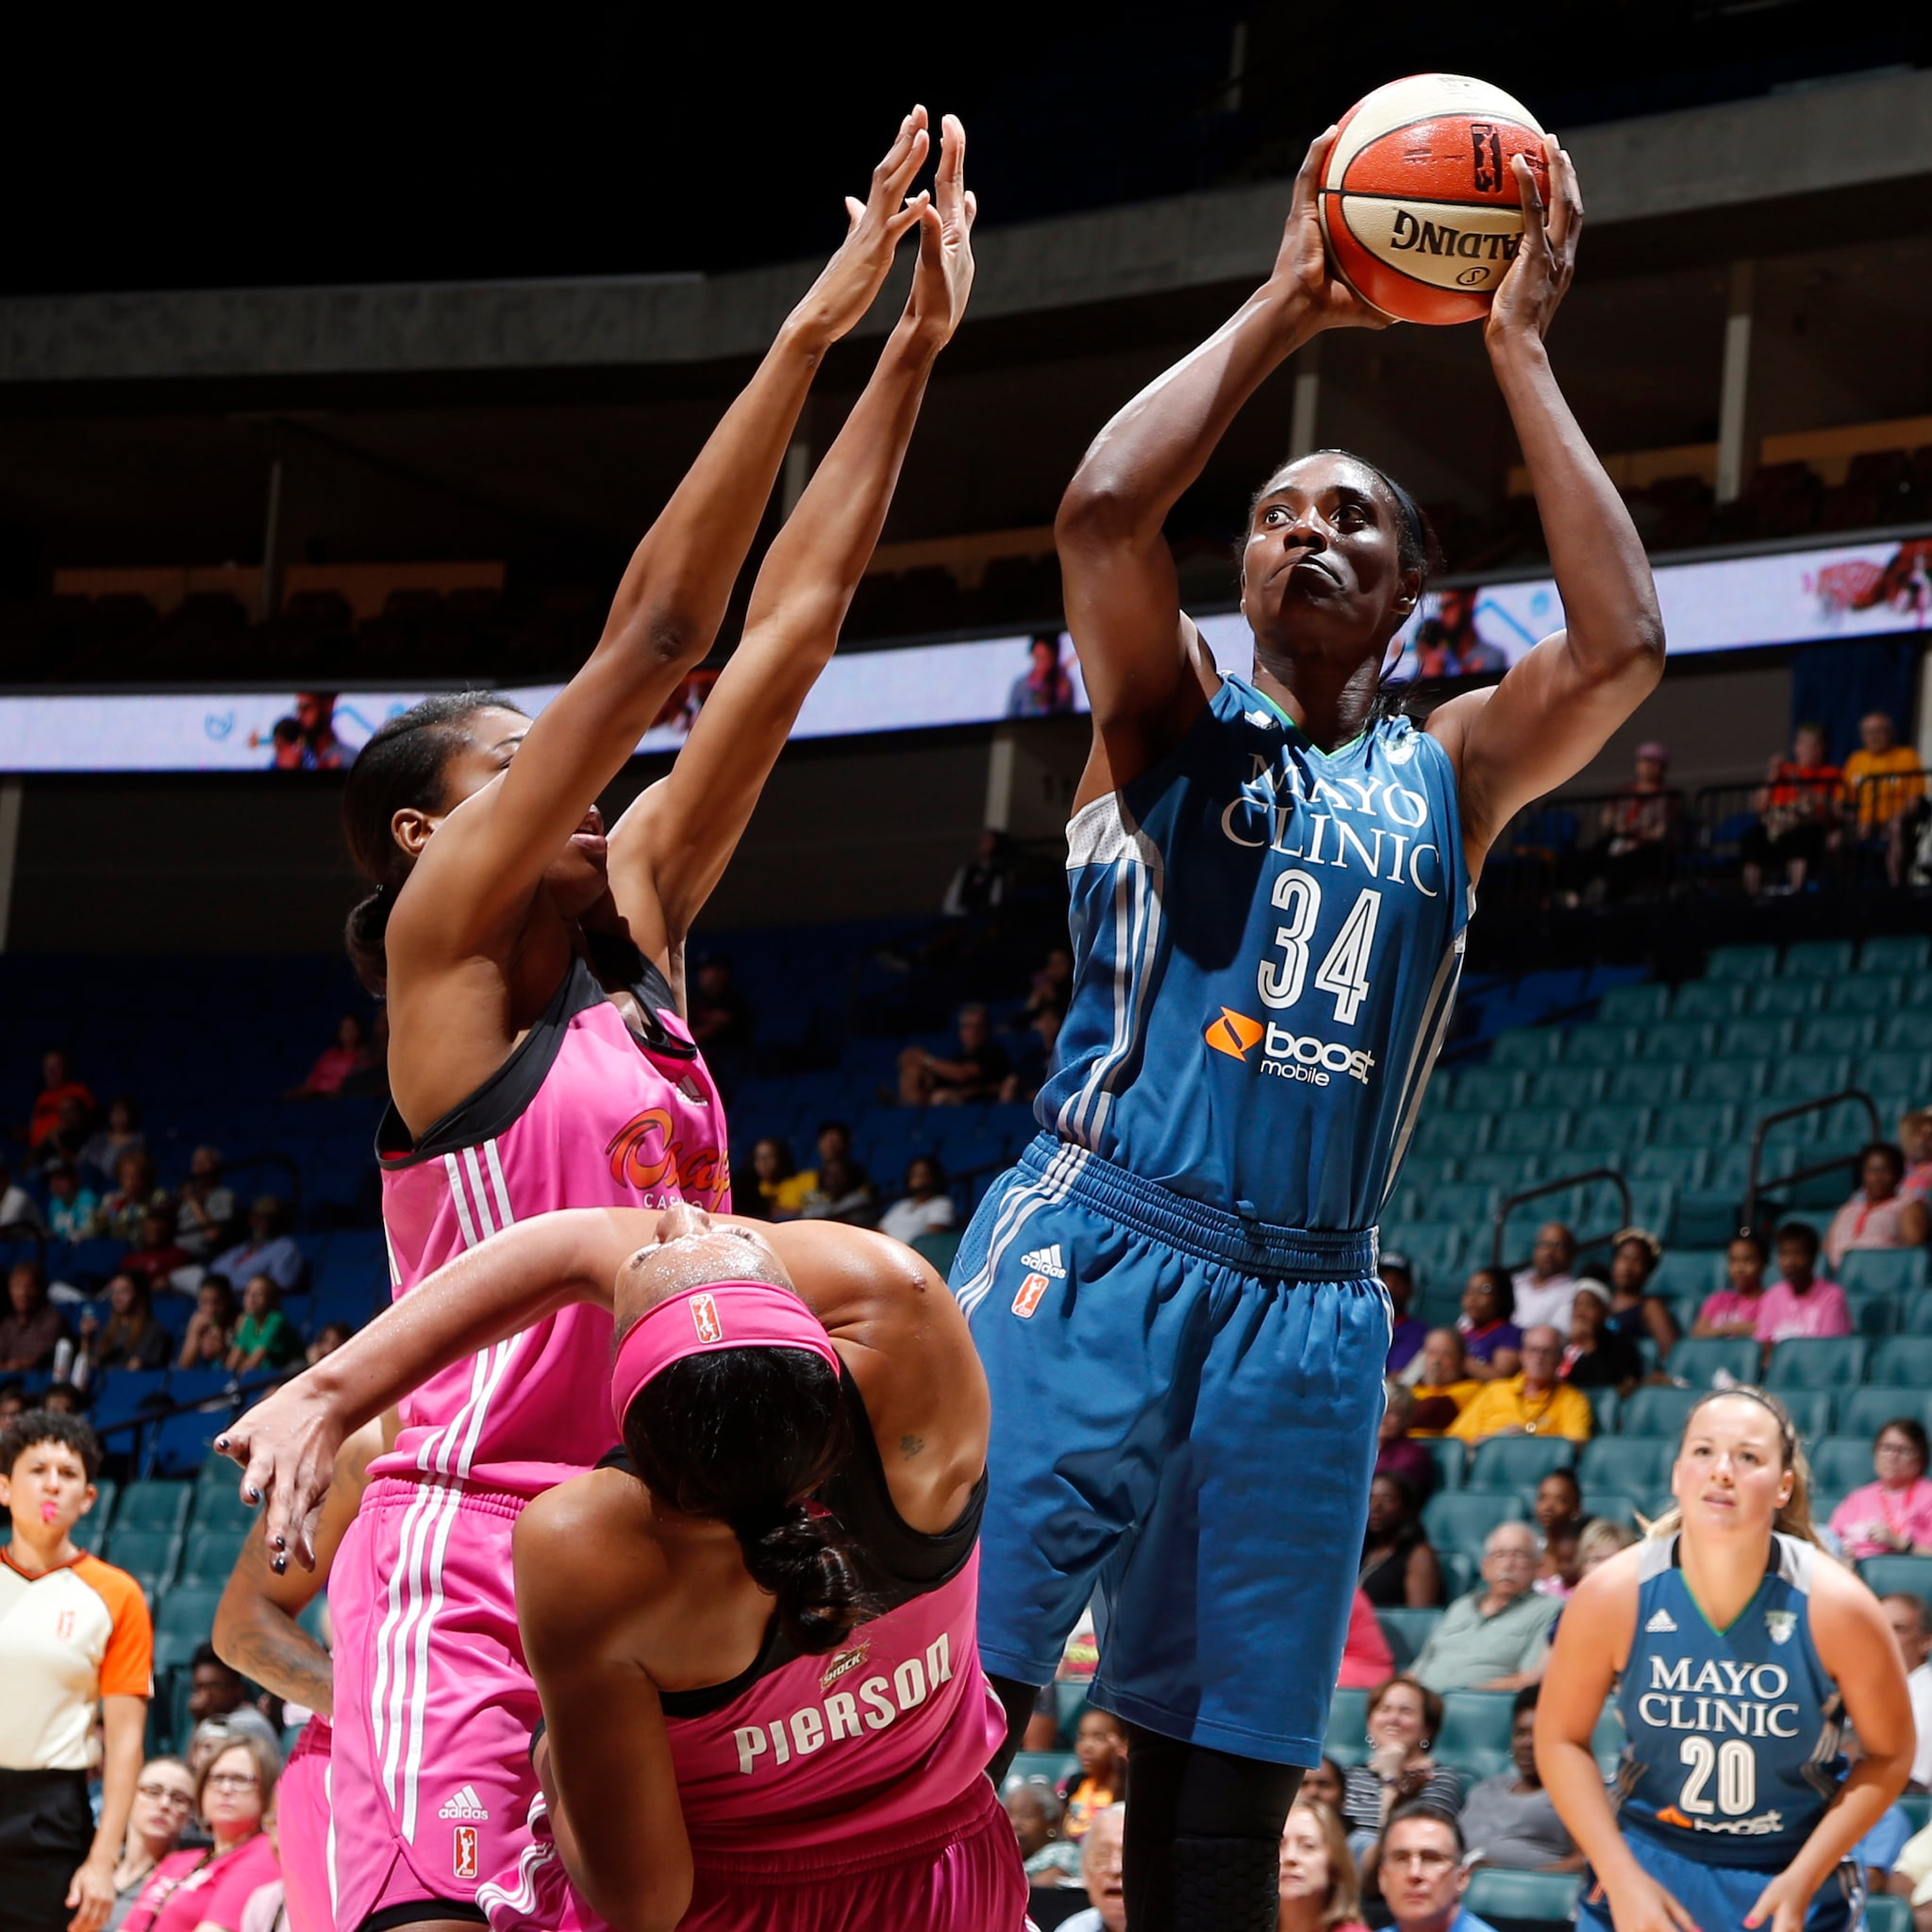 Lynx center Sylvia Fowles paced Minnesota on their way to a victory. Fowles finished with 19 points on 5-of-7 shooting (71 percent) to go with her six rebounds in  24 minutes of playing time.